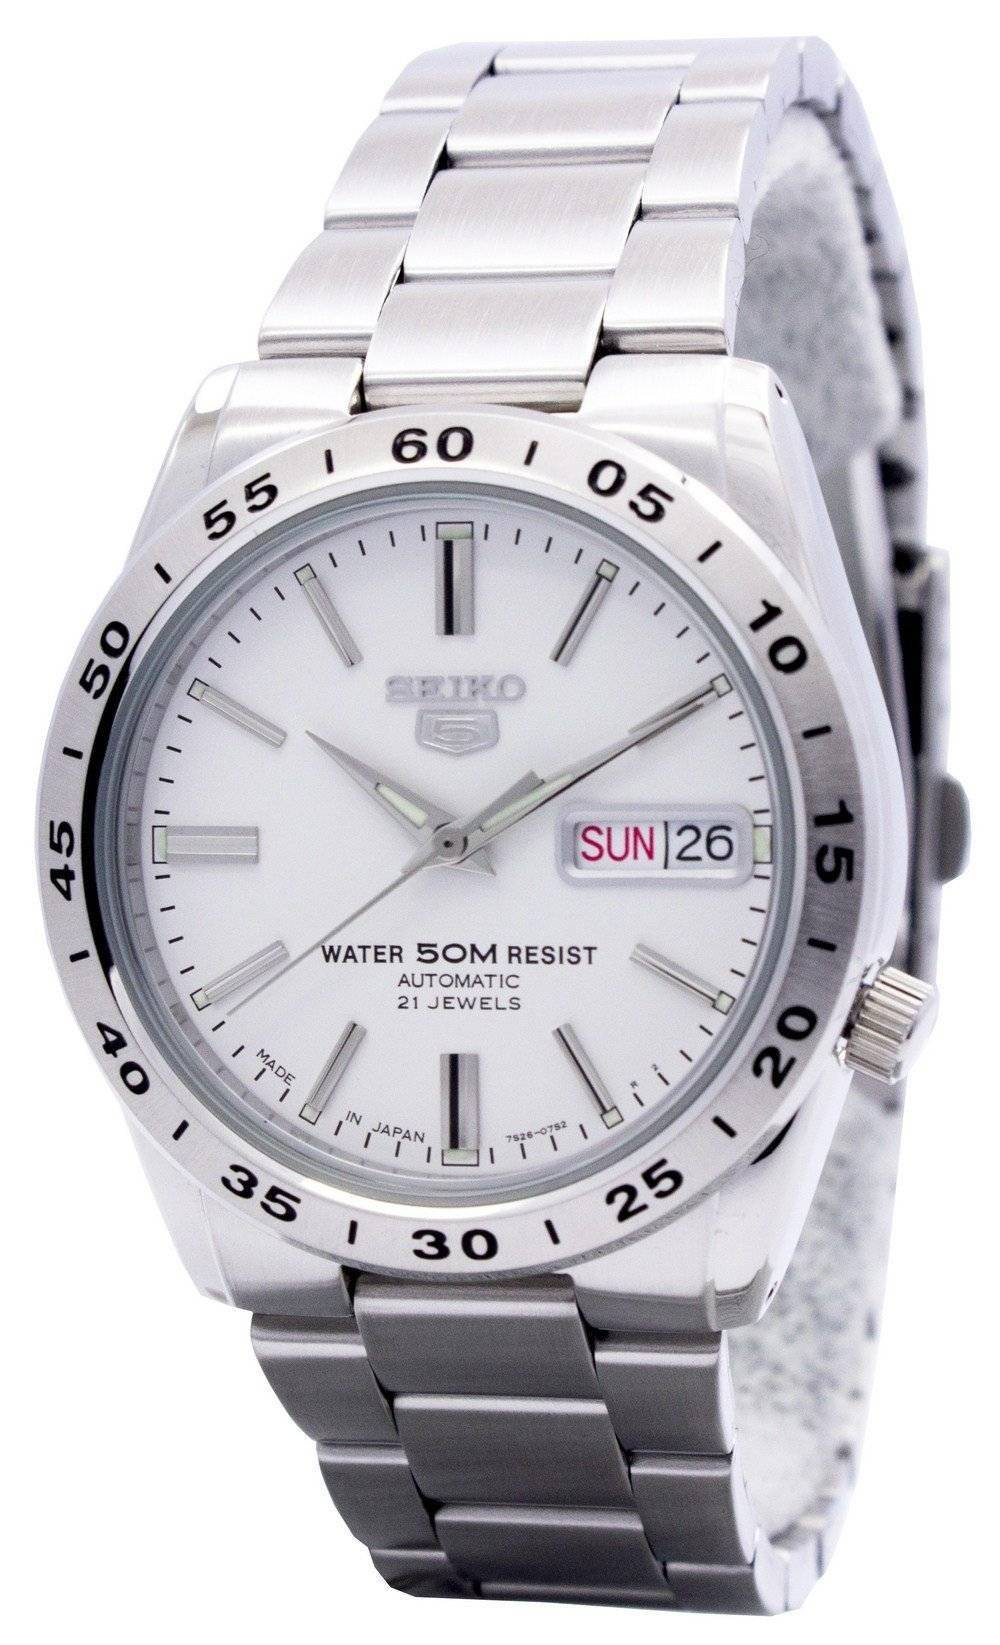 finest selection bdc60 876c5 Seiko SNKD97 - Full specifications